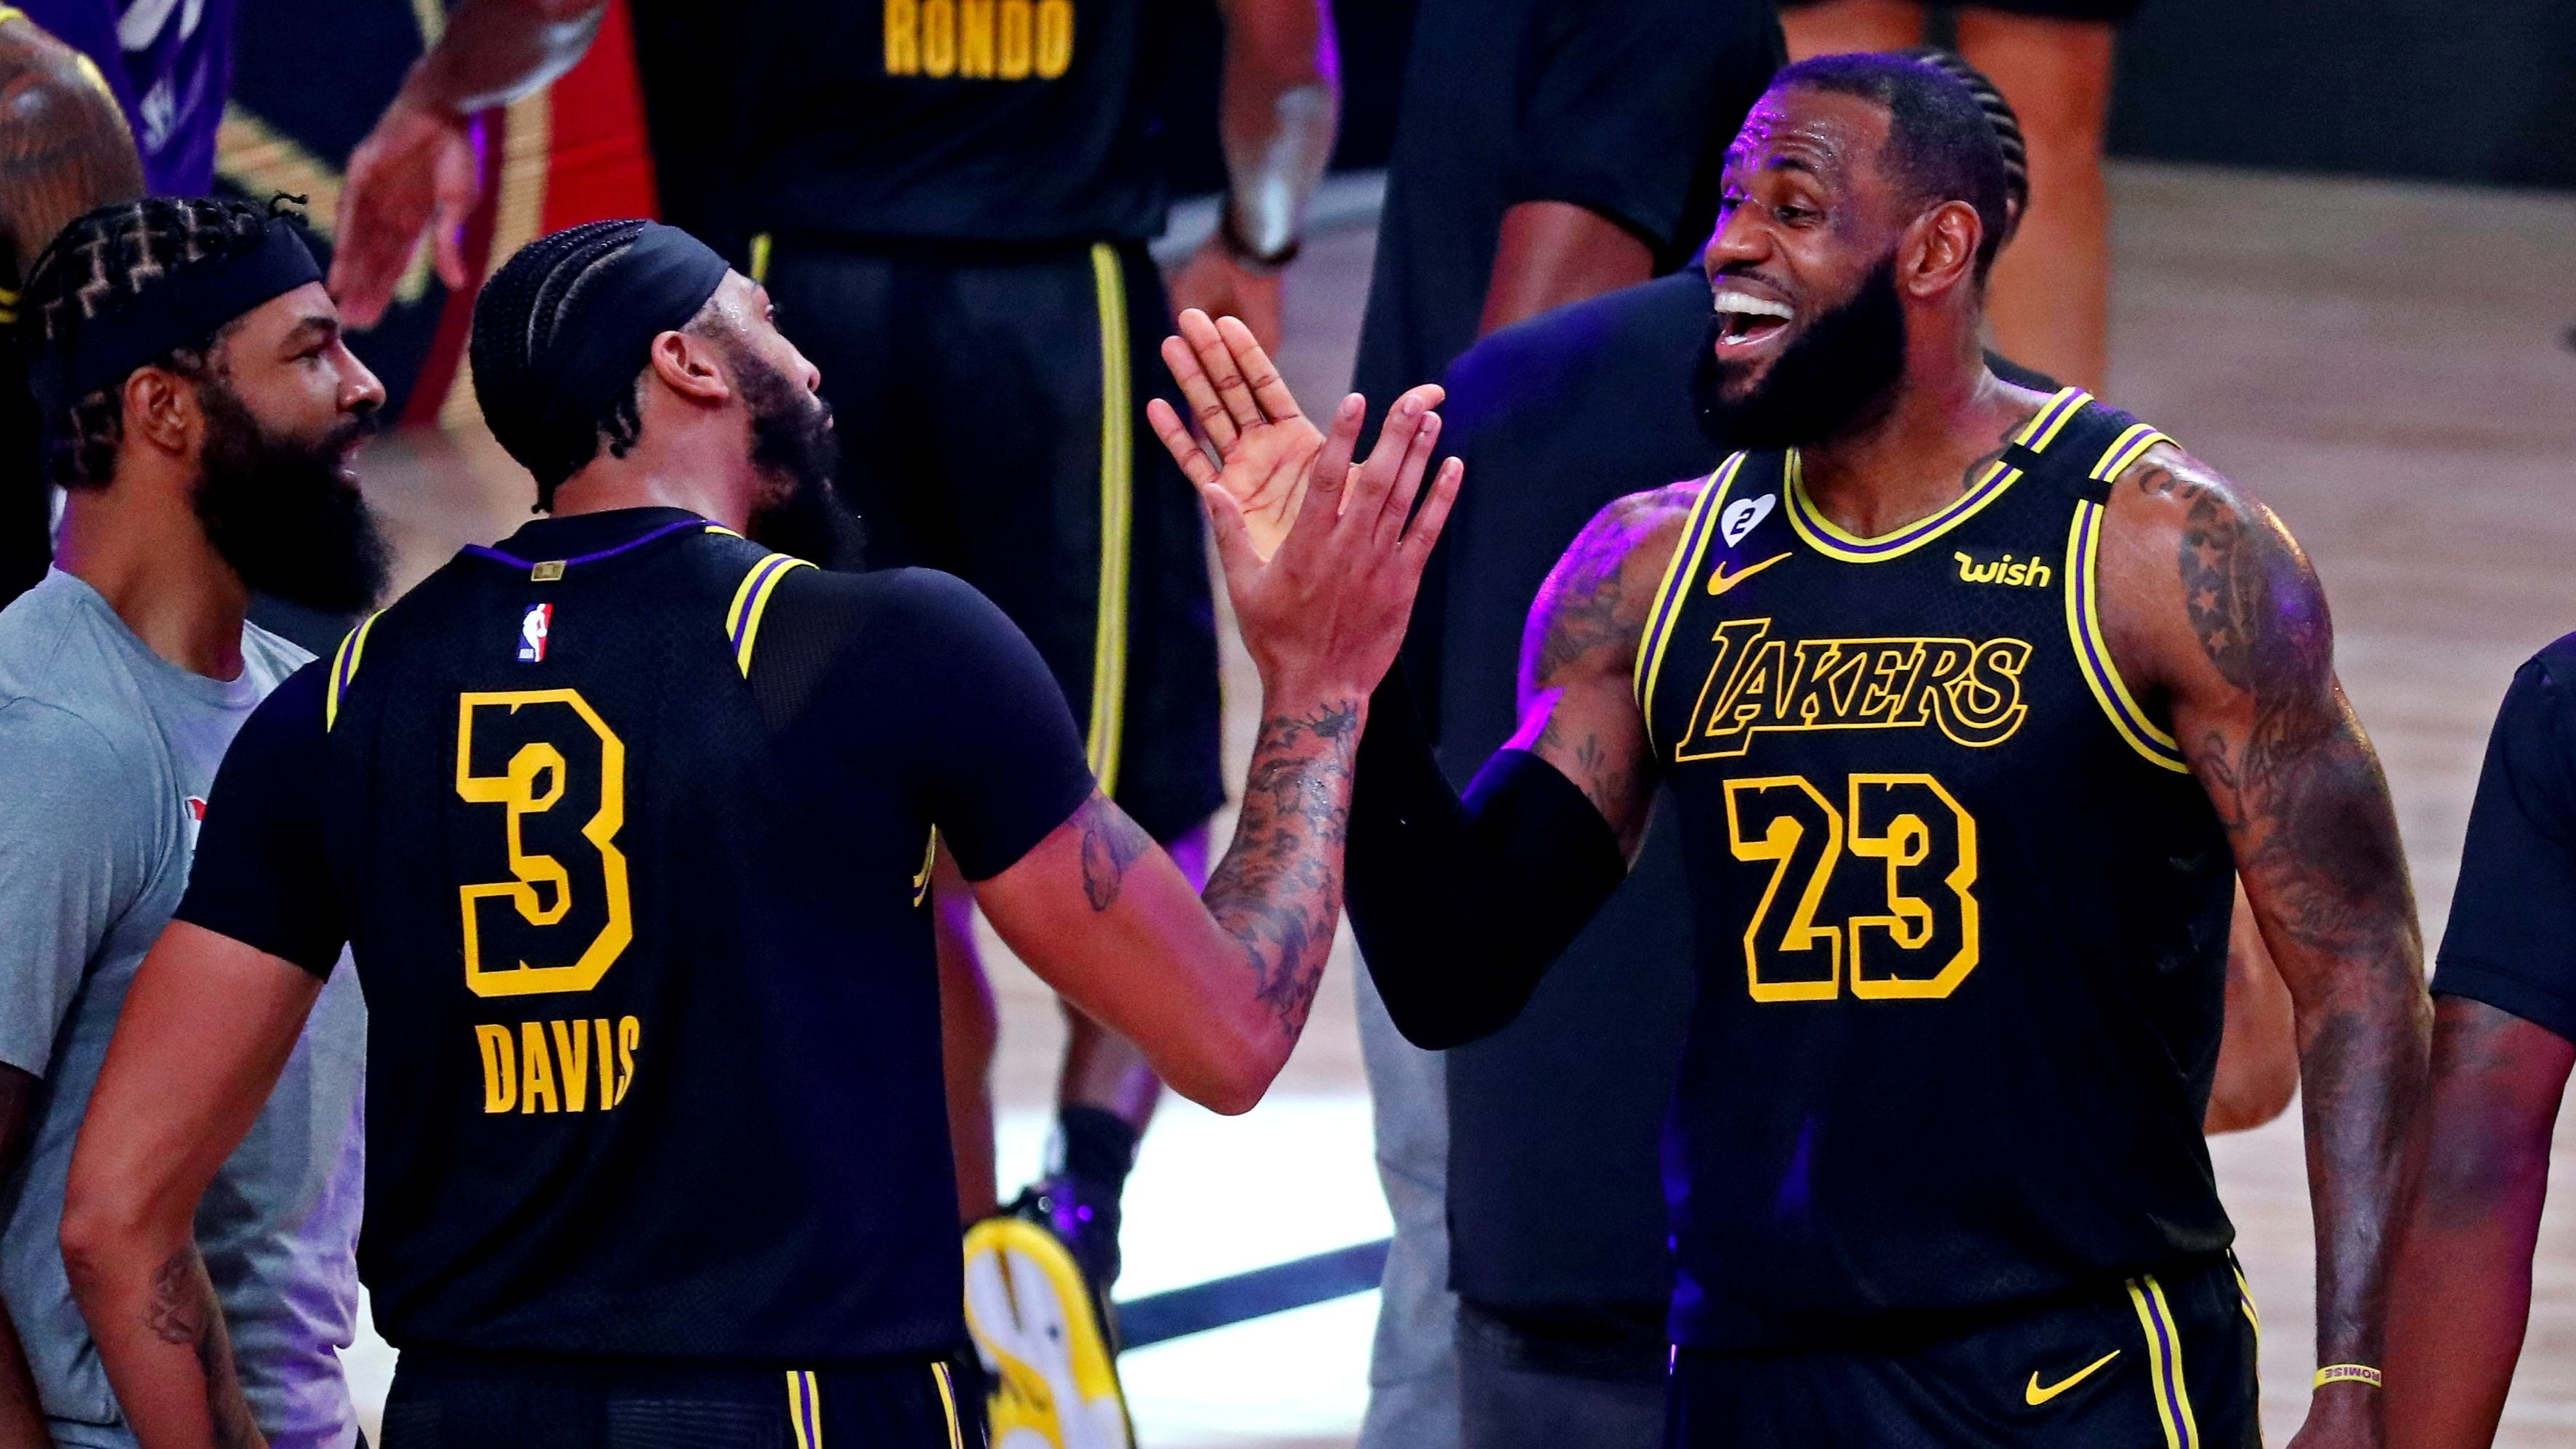 James in LeBron aim as Finals Lakers  clinch to honored